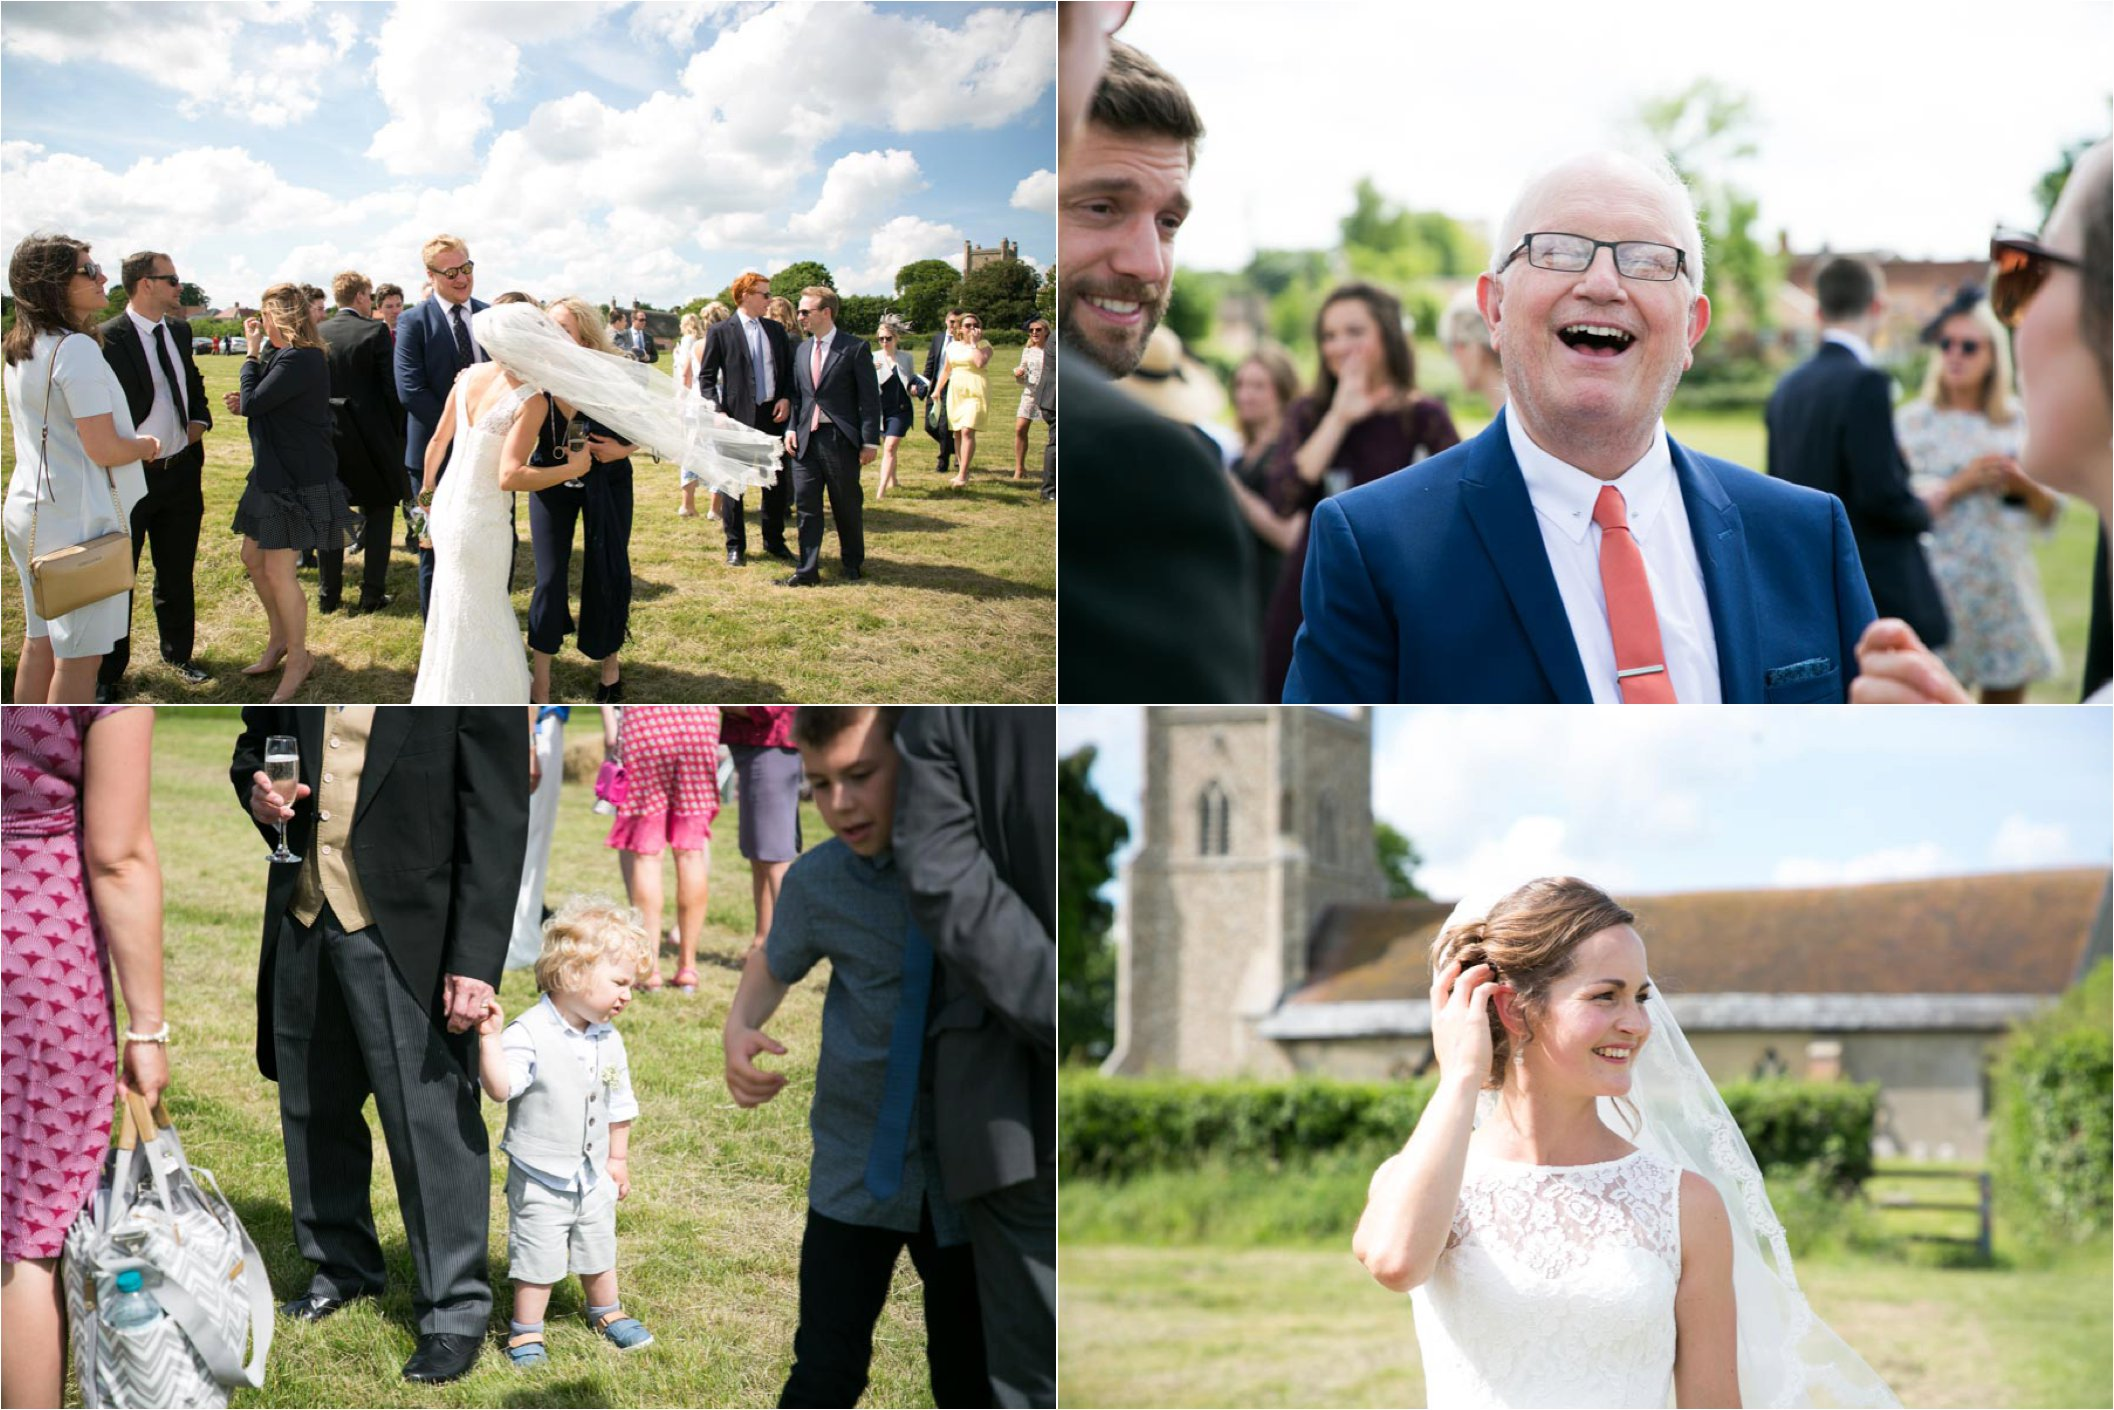 Relaxed aleternative wedding photography suffolk